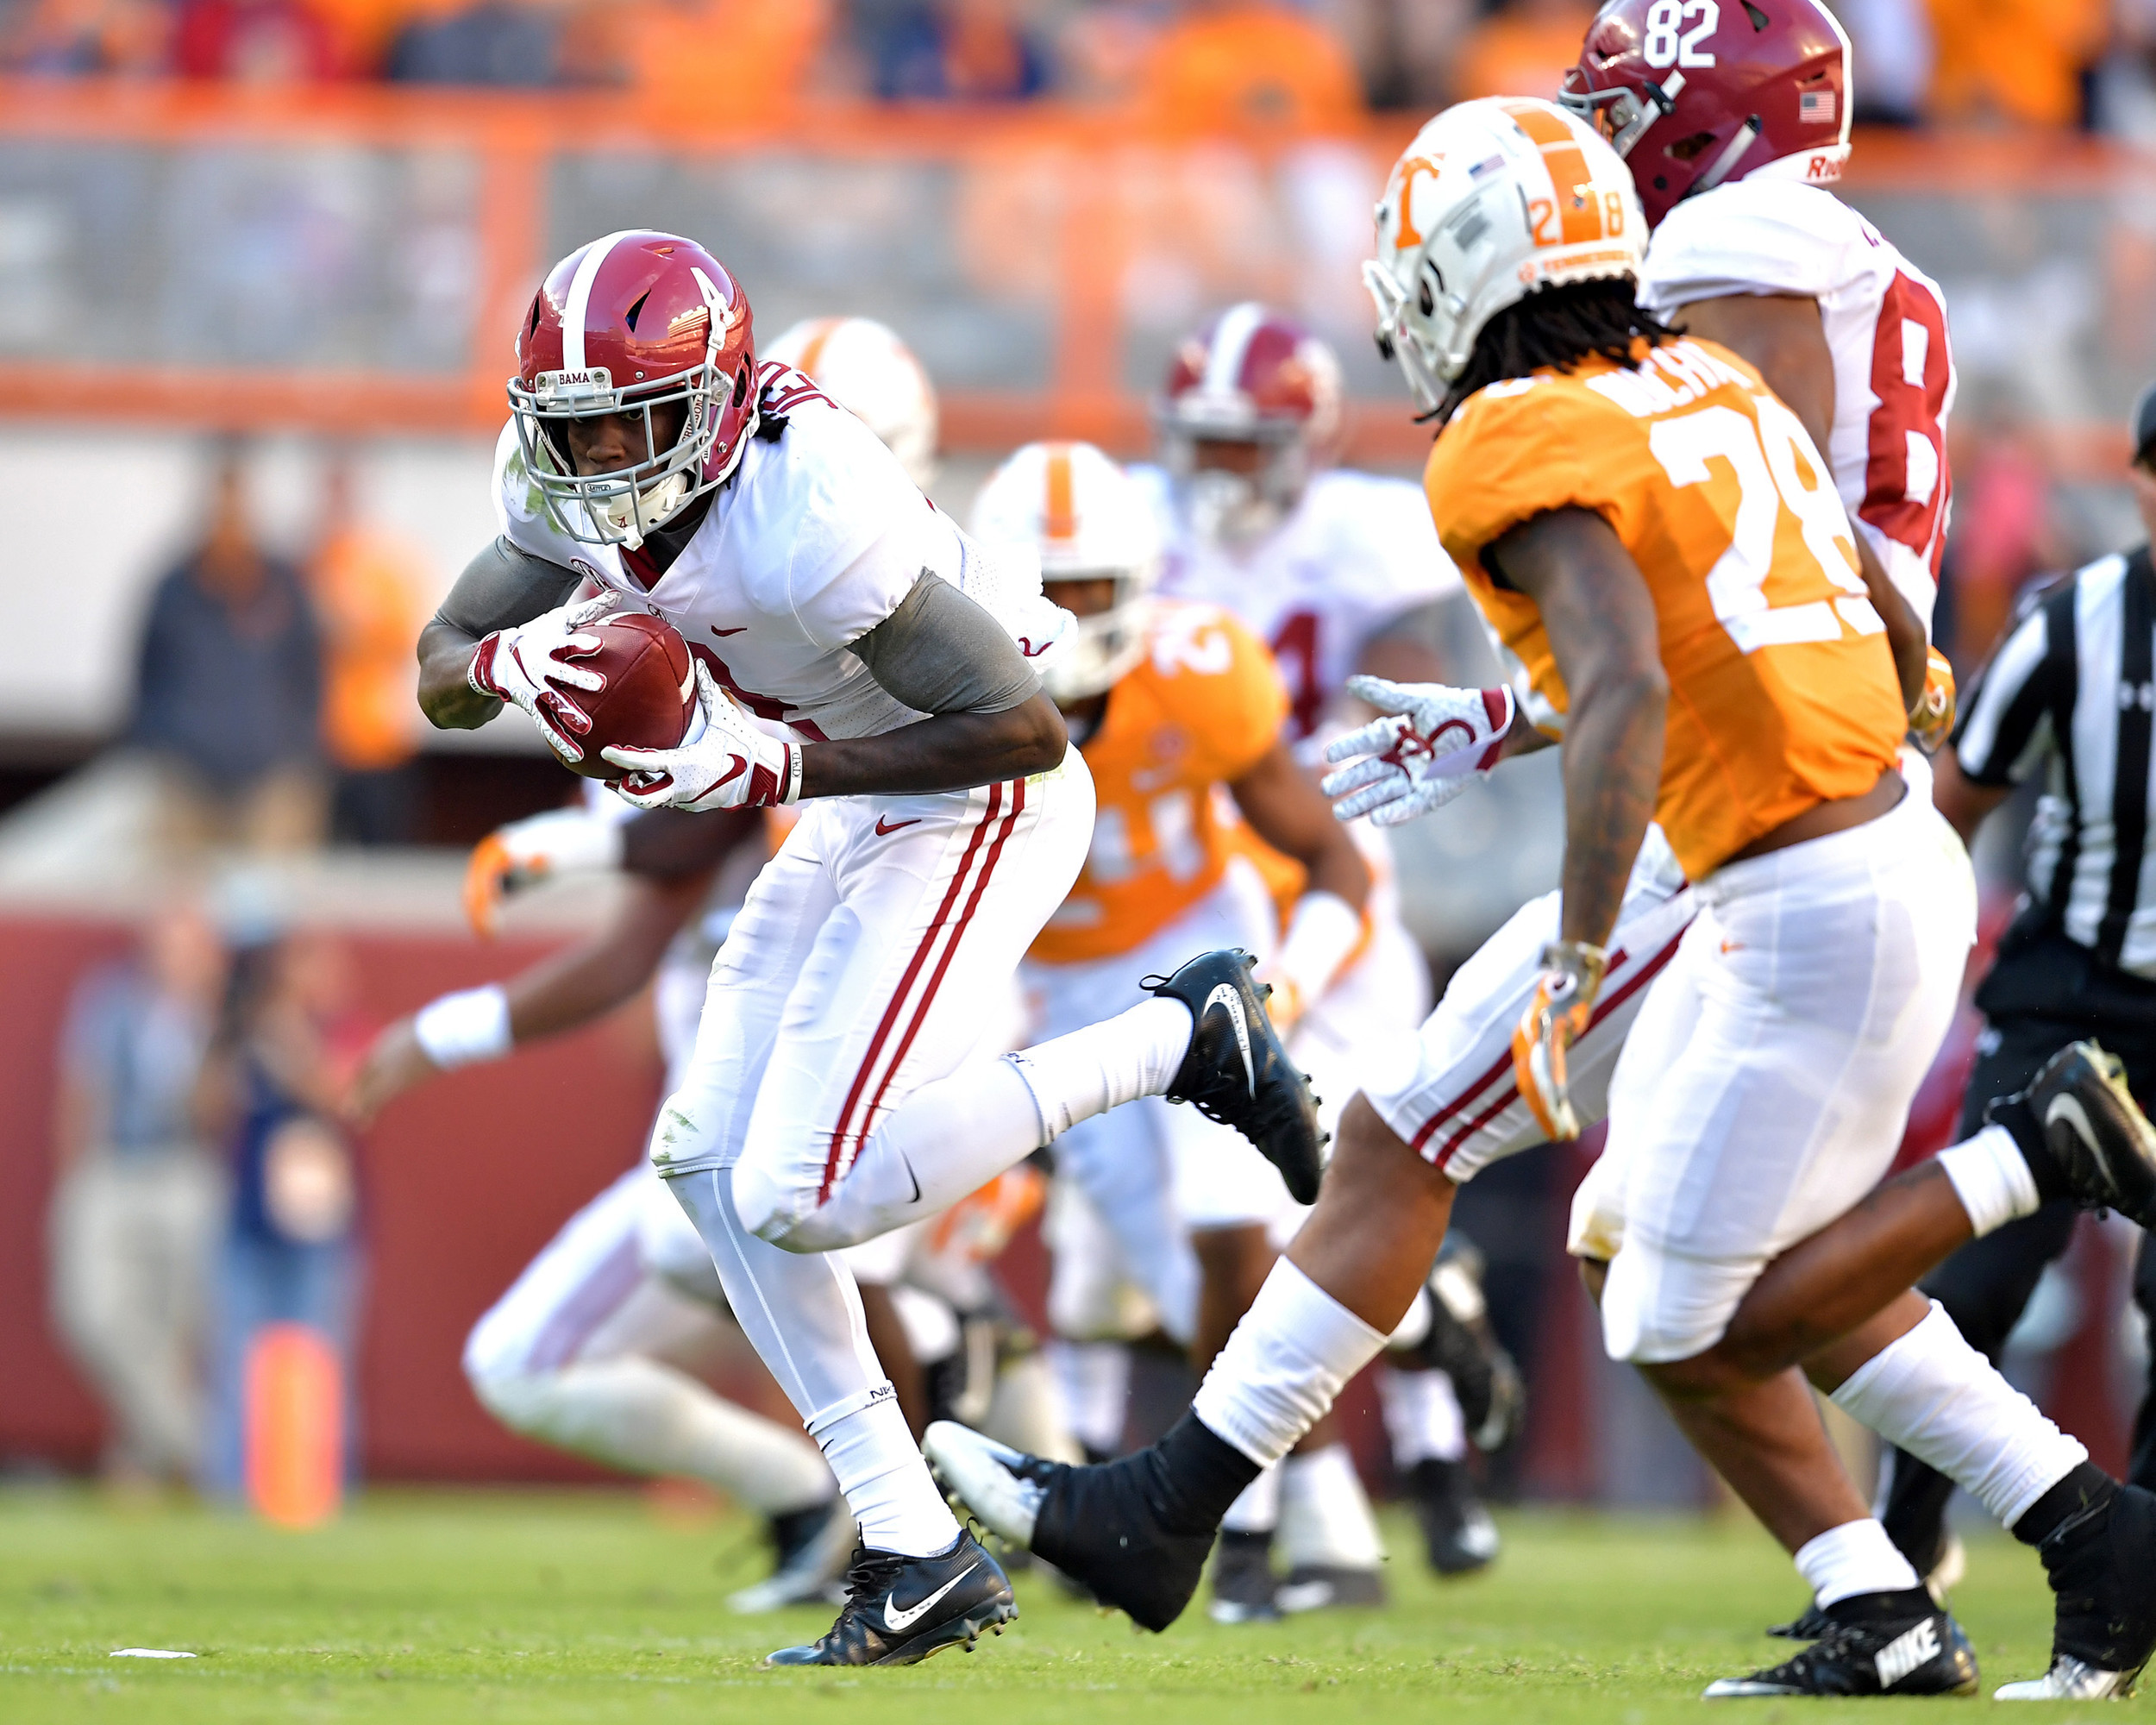 Alabama Crimson Tide wide receiver Jerry Jeudy (4) with a catch on a crossing route in the second quarter of the Alabama at Tennessee NCAA football game on Saturday, Oct. 20, 2018, at Neyland Stadium in Knoxville. Tenn. Alabama wins 58-21. (Photo by Lee Walls)